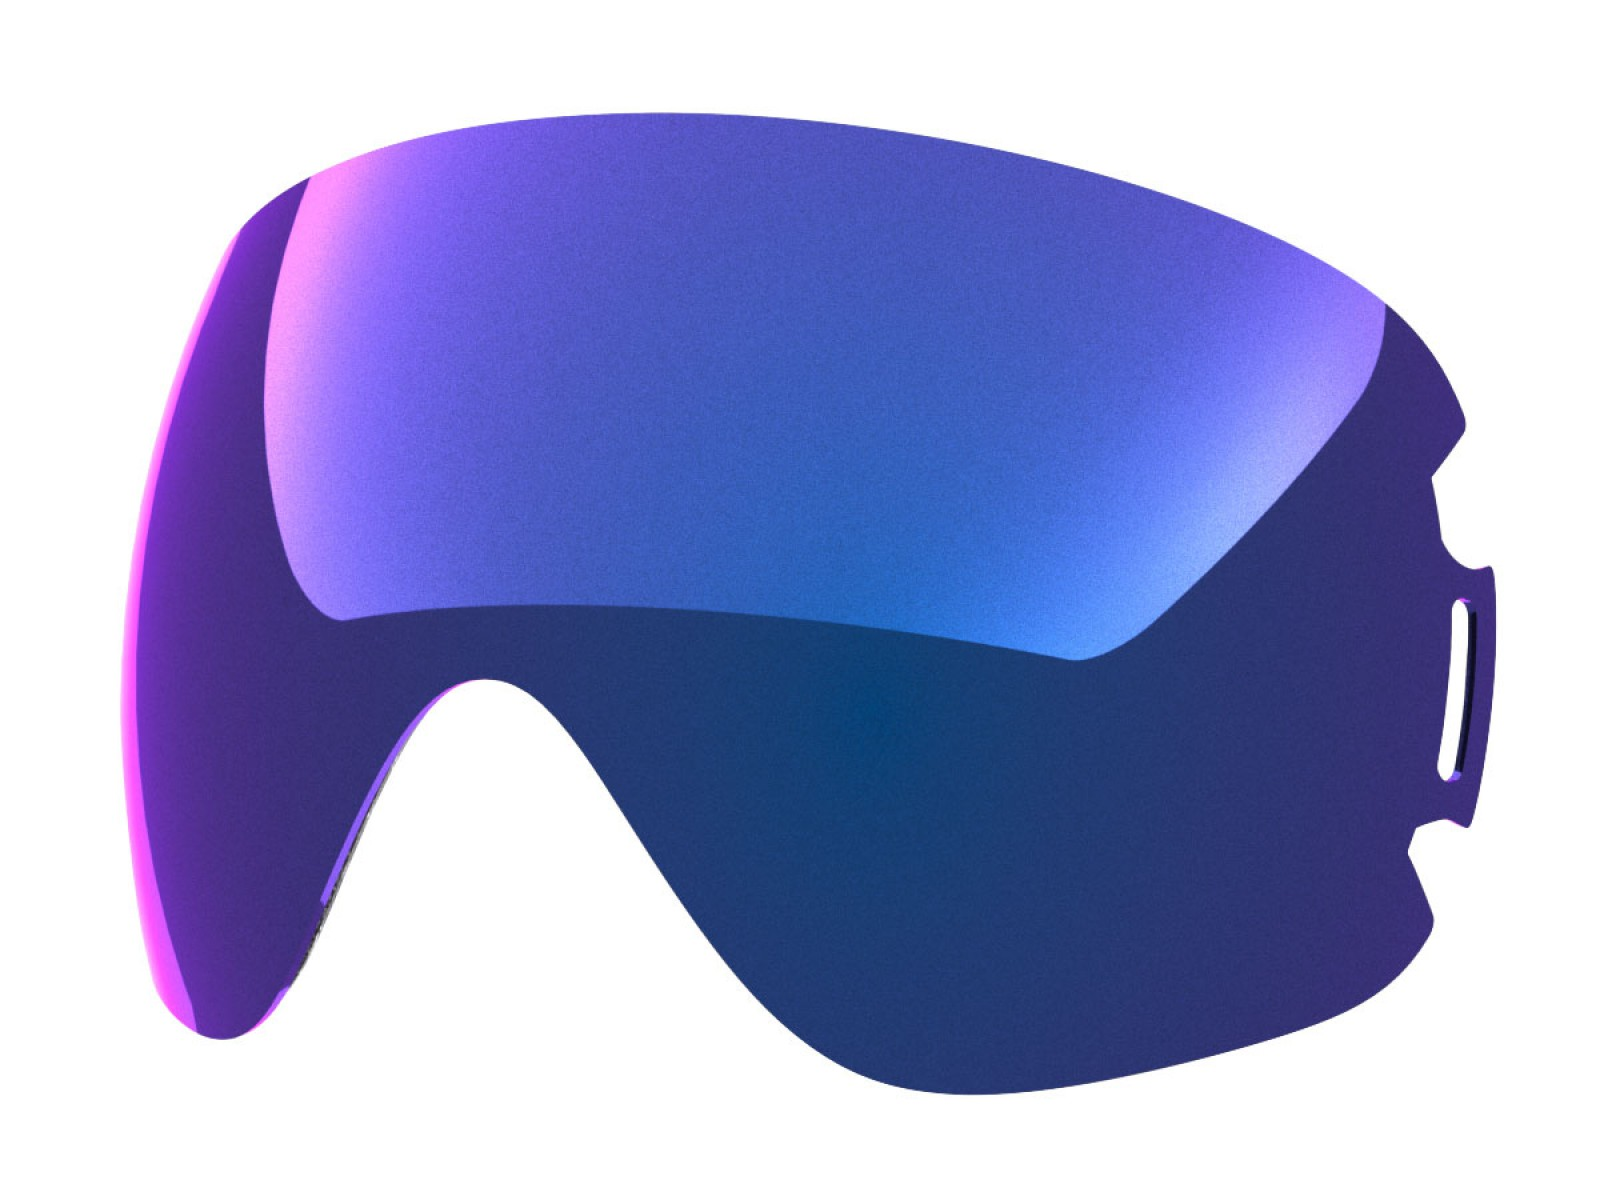 BLUE MCI LENS FOR OPEN GOGGLE